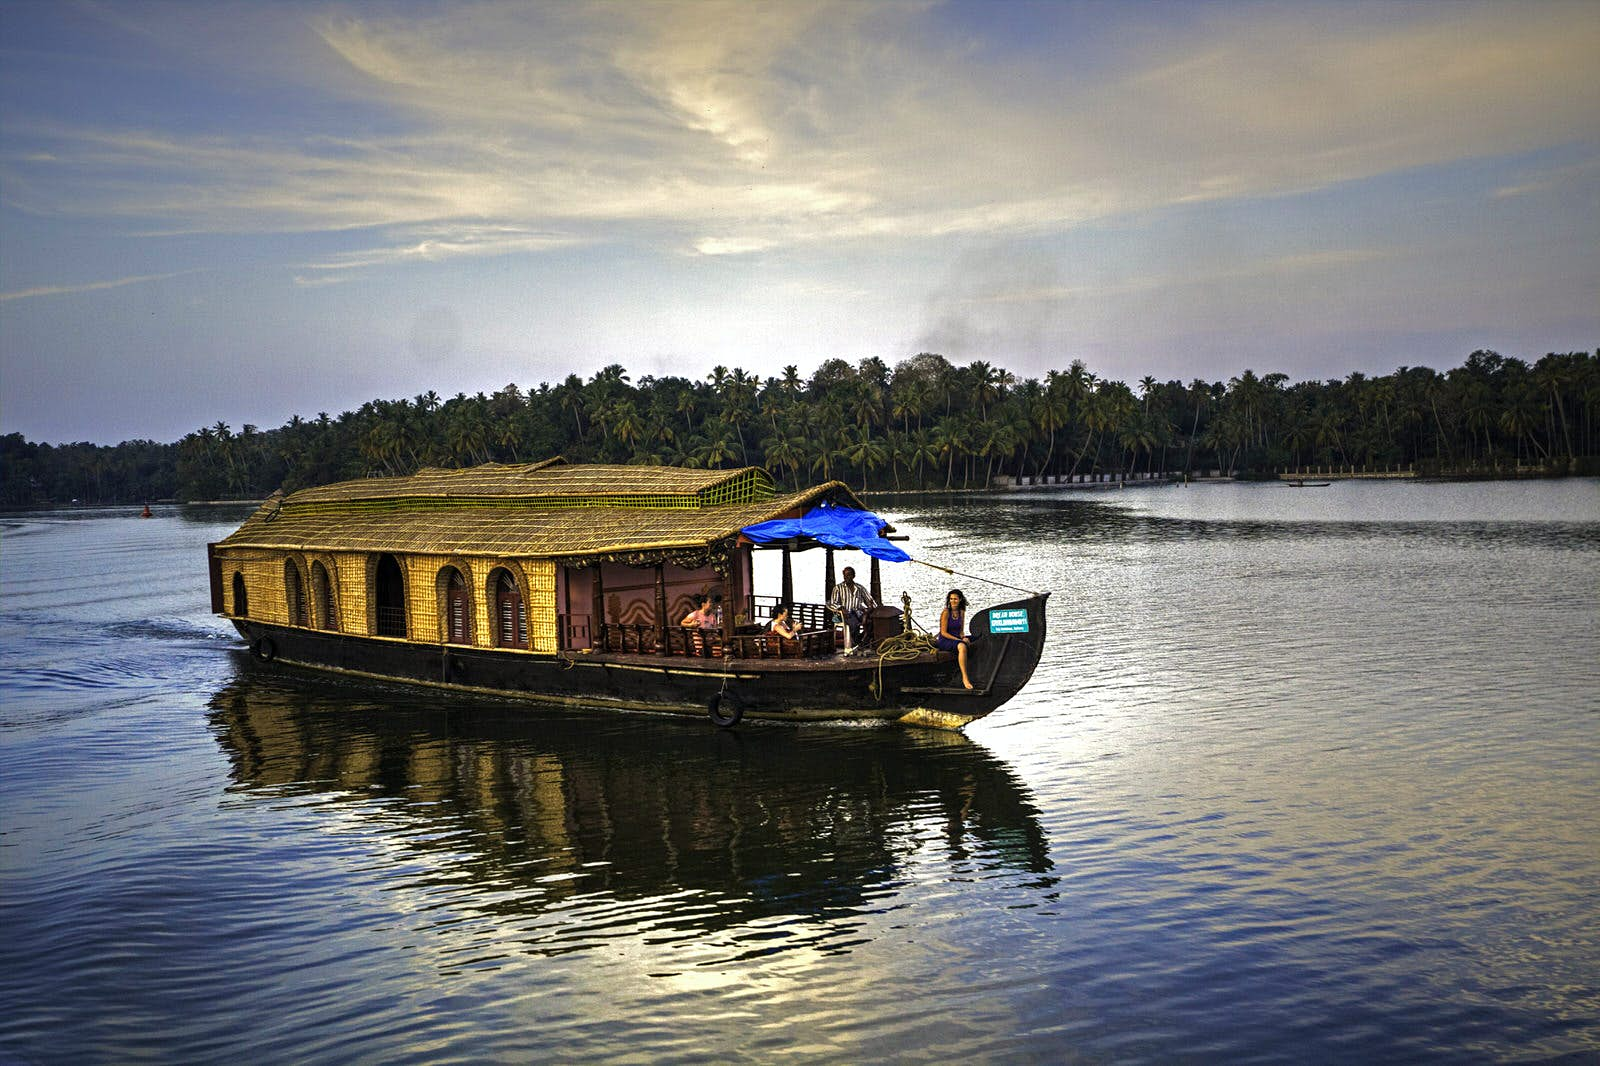 A classical houseboat on the backwaters of Kerala in India